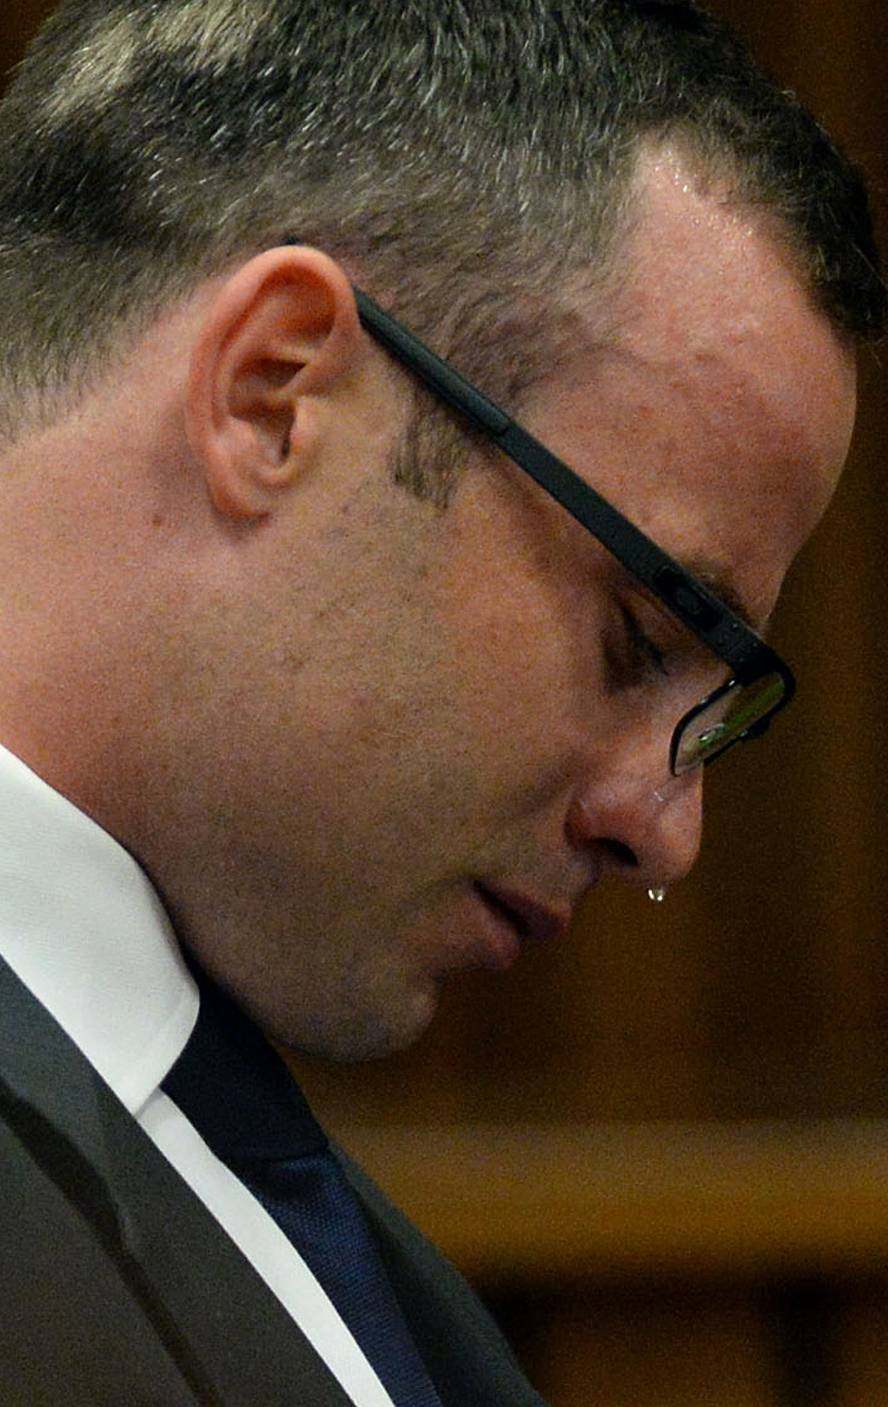 Oscar Pistorius, cries in court as he listens to evidence being given in Pretoria, South Africa, Monday, March 24, 2014. Pistorius is on trial for the shooting death of his girlfriend Reeva Steenkamp on Valentines Day 2013. (AP Photo/Chris Collingridge, Pool)